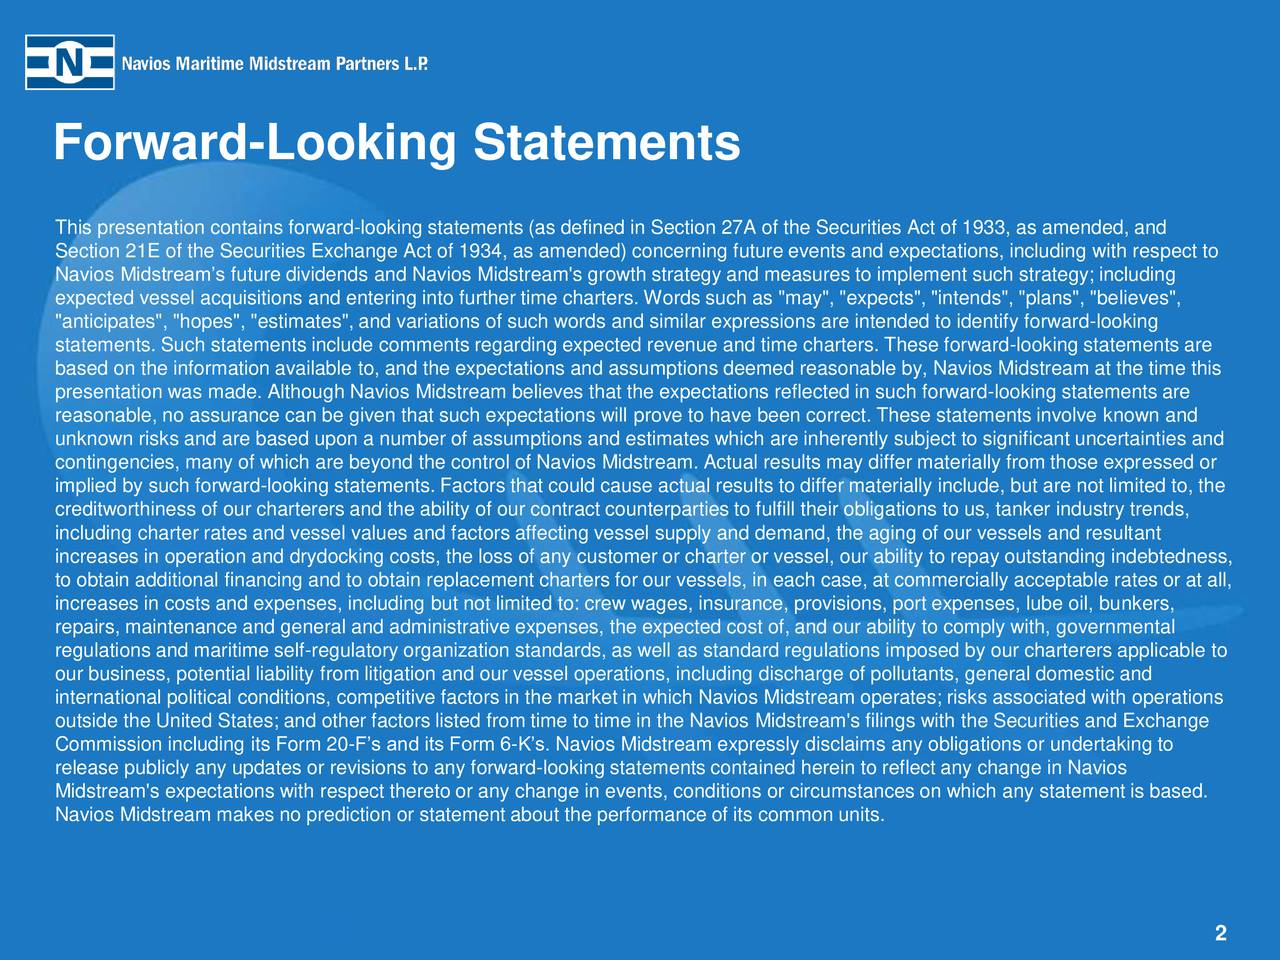 "Forward-Looking Statements This presentation contains forward-looking statements (as defined in Section 27A of the Securities Act of 1933, as amended, and Section 21E of the Securities Exchange Act of 1934, as amended) concerning future events and expectations, including with respect to Navios Midstreams future dividends and Navios Midstream's growth strategy and measures to implement such strategy; including expected vessel acquisitions and entering into further time charters. Words such as ""may"", ""expects"", ""intends"", ""plans"", ""believes"", ""anticipates"", ""hopes"", ""estimates"", and variations of such words and similar expressions are intended to identify forward-looking statements. Such statements include comments regarding expected revenue and time charters. These forward-looking statements are based on the information available to, and the expectations and assumptions deemed reasonable by, Navios Midstream at the time this presentation was made. Although Navios Midstream believes that the expectations reflected in such forward-looking statements are reasonable, no assurance can be given that such expectations will prove to have been correct. These statements involve known and unknown risks and are based upon a number of assumptions and estimates which are inherently subject to significant uncertainties and contingencies, many of which are beyond the control of Navios Midstream. Actual results may differ materially from those expressed or implied by such forward-looking statements. Factors that could cause actual results to differ materially include, but are not limited to, the creditworthiness of our charterers and the ability of our contract counterparties to fulfill their obligations to us, tanker industry trends, including charter rates and vessel values and factors affecting vessel supply and demand, the aging of our vessels and resultant increases in operation and drydocking costs, the loss of any customer or charter or vessel, our ability to repay outstanding indebtedness, to obtain additional financing and to obtain replacement charters for our vessels, in each case, at commercially acceptable rates or at all, increases in costs and expenses, including but not limited to: crew wages, insurance, provisions, port expenses, lube oil, bunkers, repairs, maintenance and general and administrative expenses, the expected cost of, and our ability to comply with, governmental regulations and maritime self-regulatory organization standards, as well as standard regulations imposed by our charterers applicable to our business, potential liability from litigation and our vessel operations, including discharge of pollutants, general domestic and international political conditions, competitive factors in the market in which Navios Midstream operates; risks associated with operations outside the United States; and other factors listed from time to time in the Navios Midstream's filings with the Securities and Exchange Commission including its Form 20-Fs and its Form 6-Ks. Navios Midstream expressly disclaims any obligations or undertaking to release publicly any updates or revisions to any forward-looking statements contained herein to reflect any change in Navios Midstream's expectations with respect thereto or any change in events, conditions or circumstances on which any statement is based. Navios Midstream makes no prediction or statement about the performance of its common units. 2"